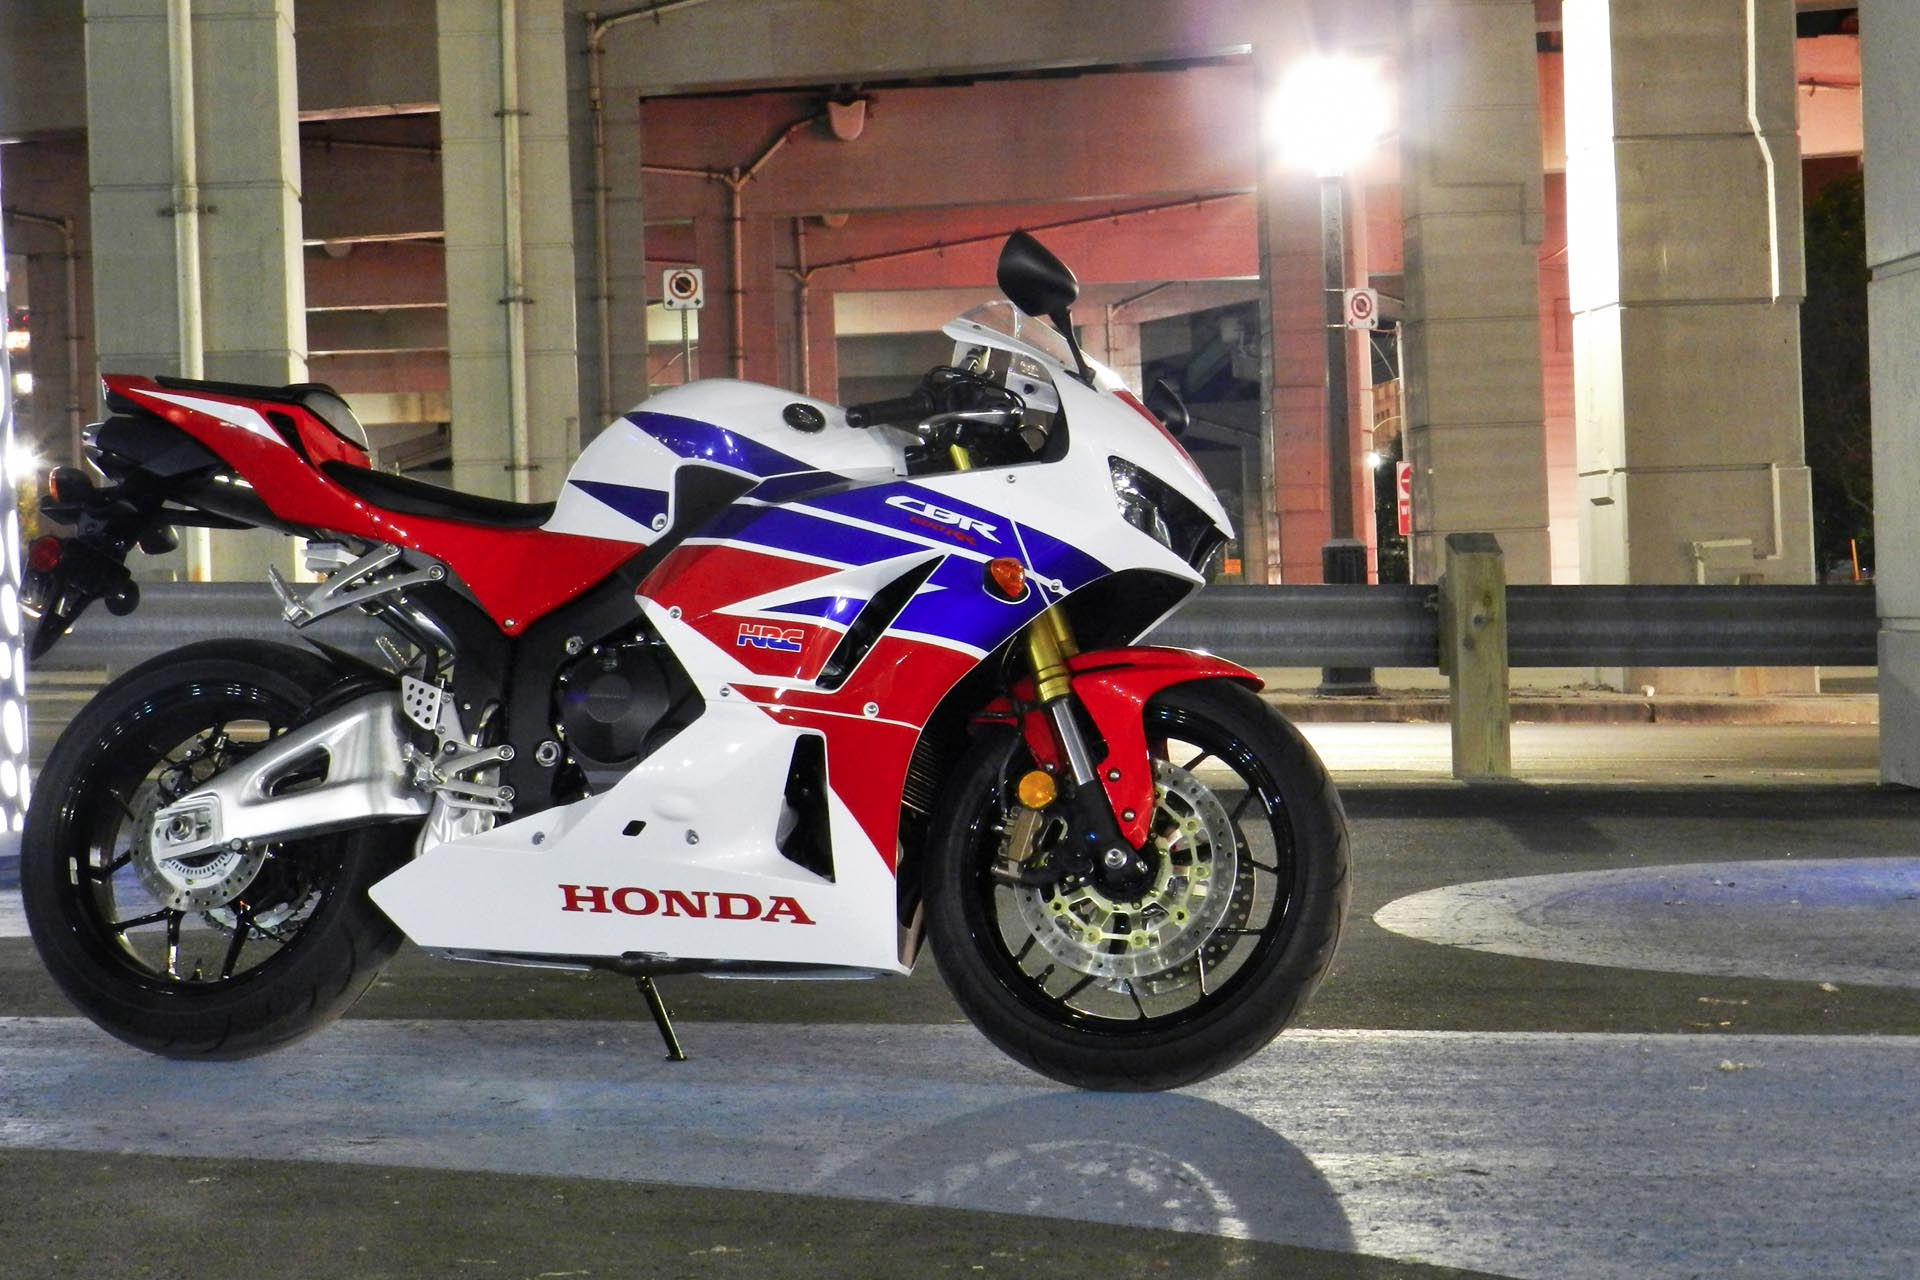 Honda Global Motorcycle Sales